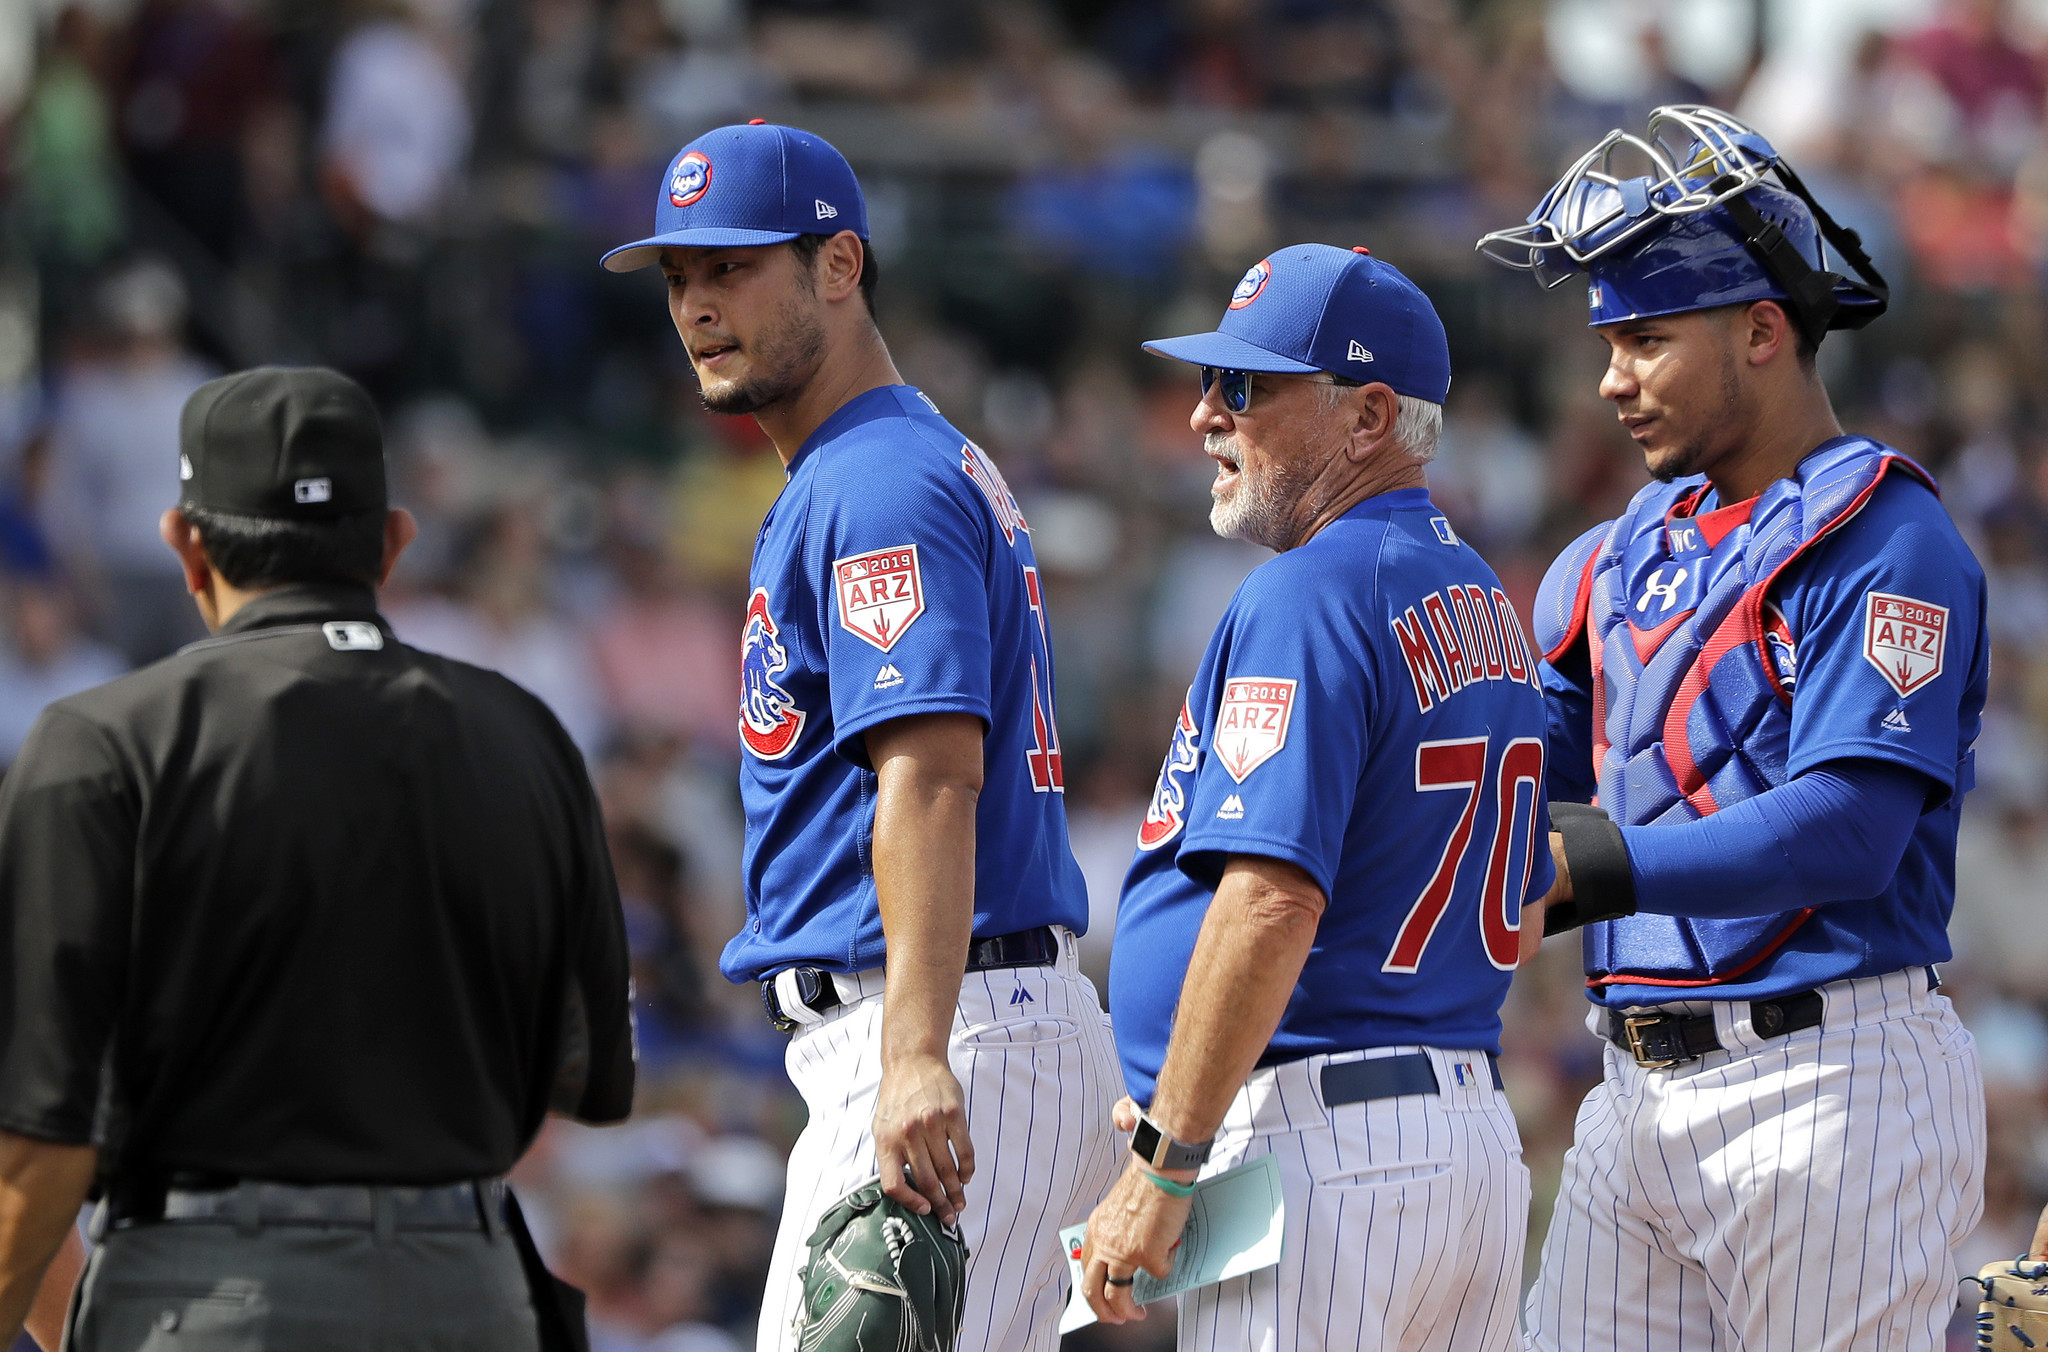 Spring training: Cubs 6, Mariners 4